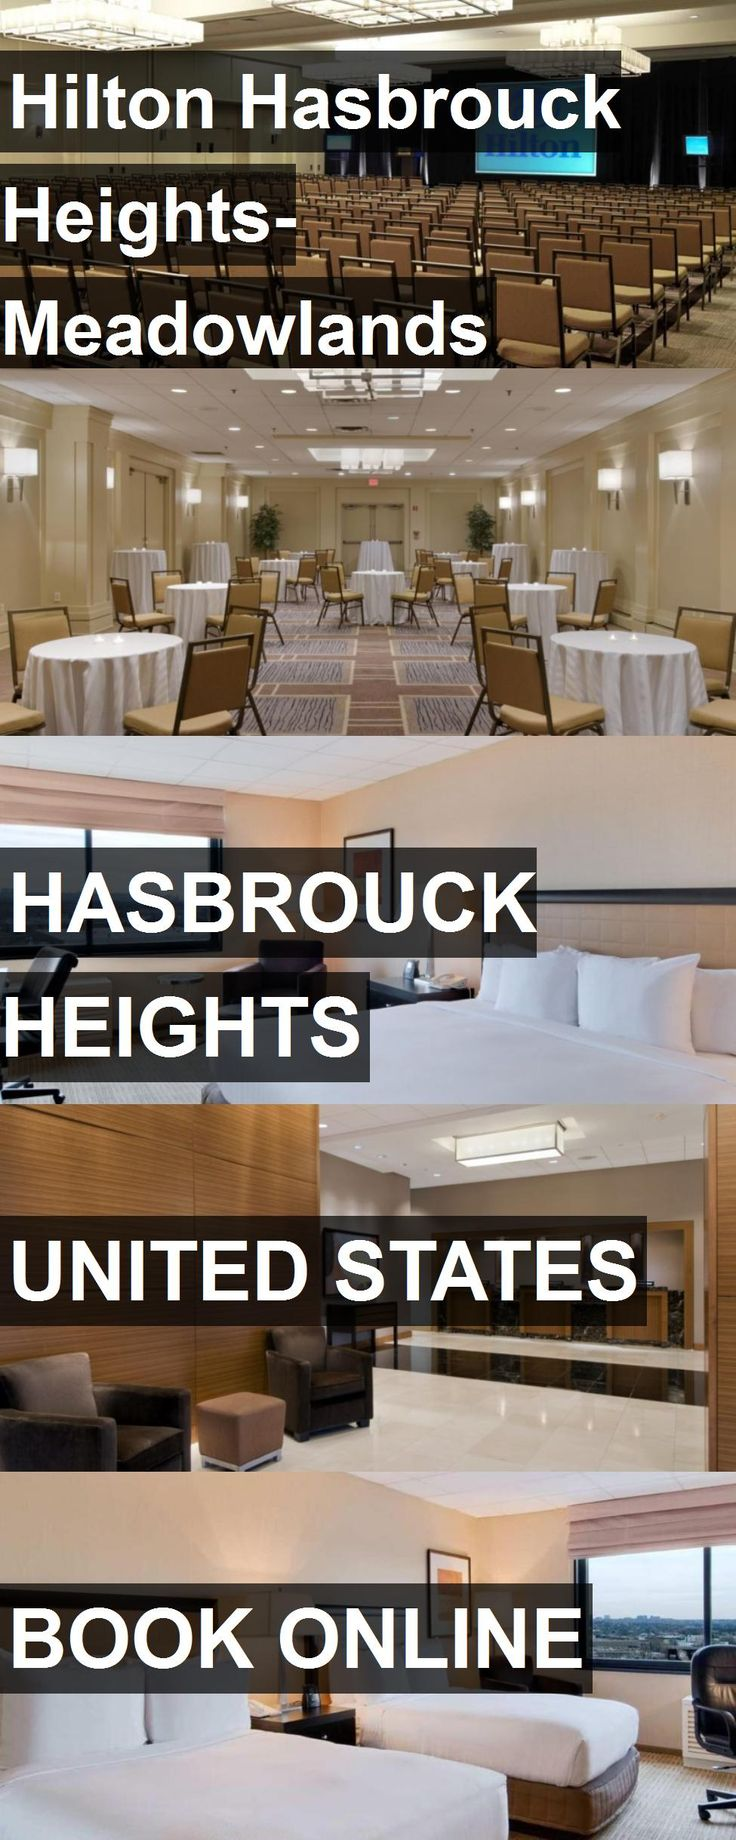 Hotel Hilton Hasbrouck Heights-Meadowlands in Hasbrouck Heights, United States. For more information, photos, reviews and best prices please follow the link. #UnitedStates #HasbrouckHeights #travel #vacation #hotel